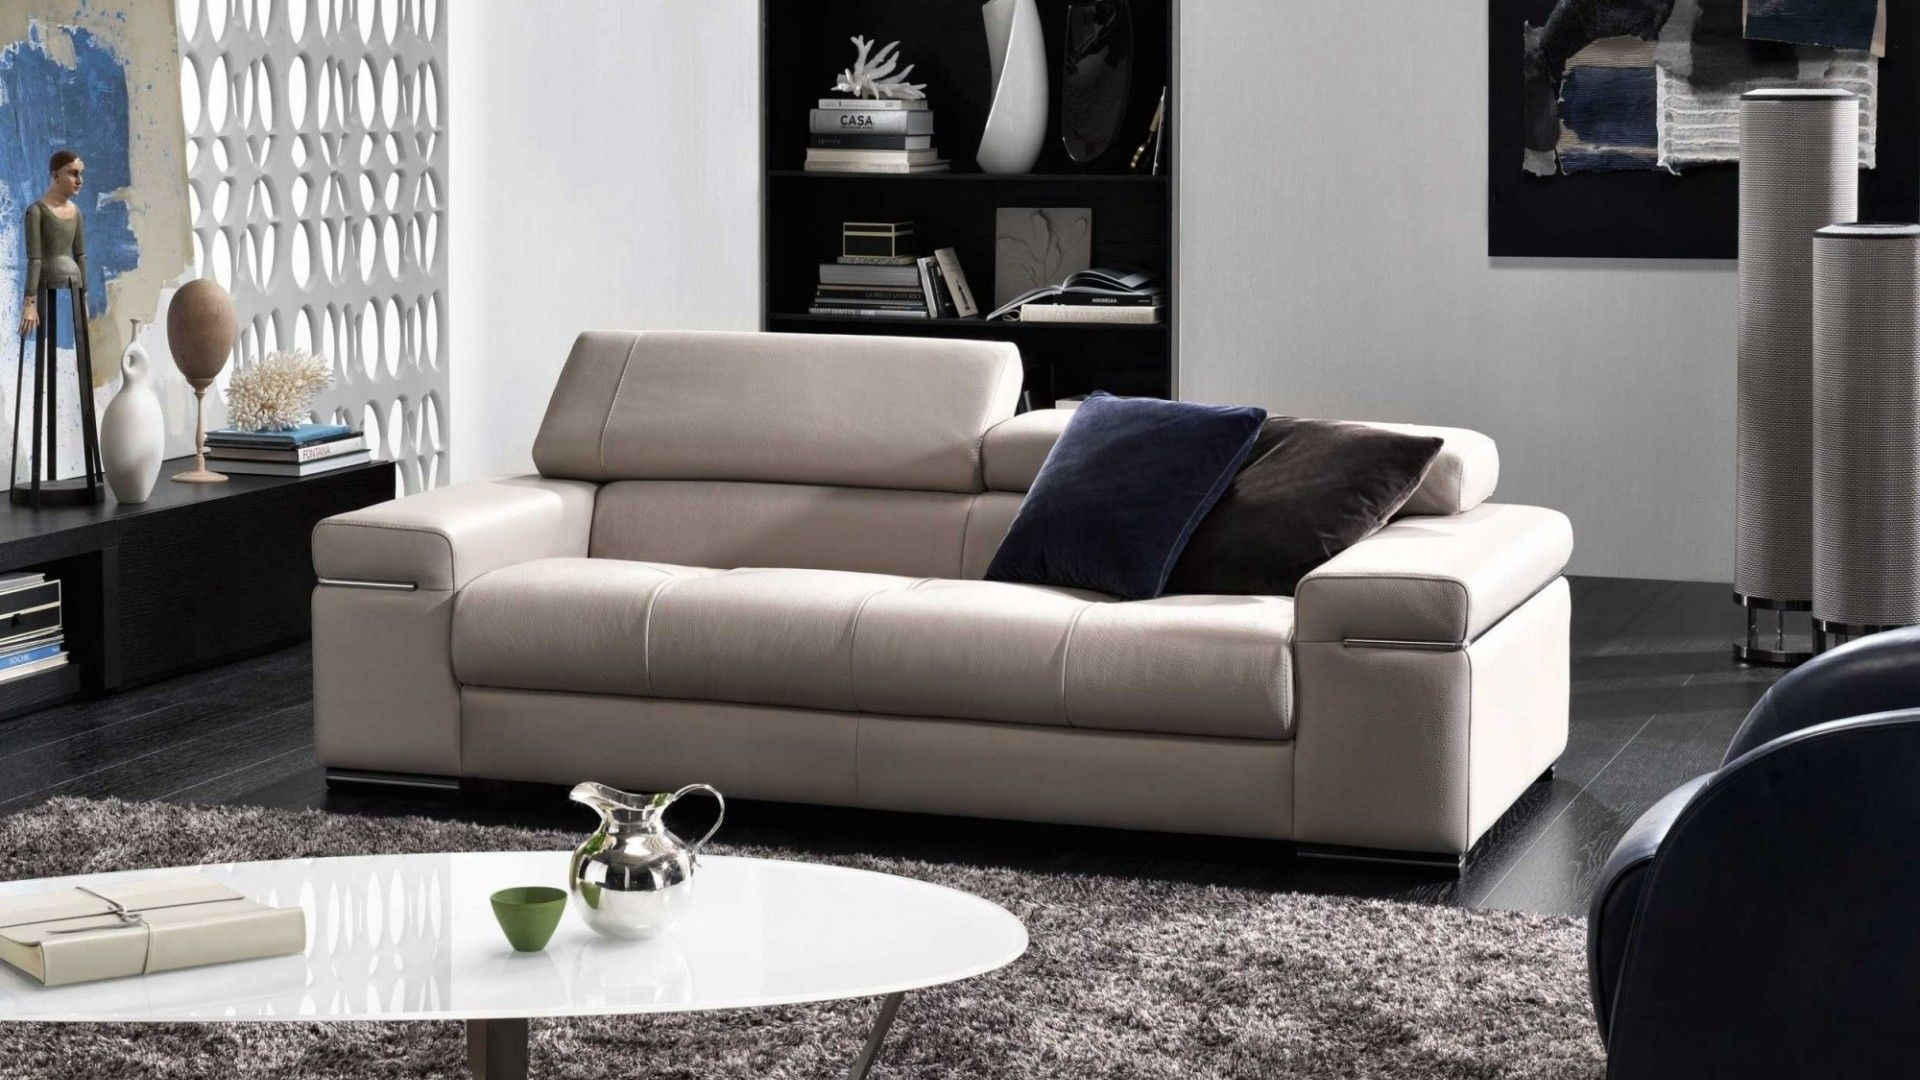 Natuzzi editions giotto leather dual power sofa recliner with tilt headrest. 10 Best Philadelphia Sectional Sofas